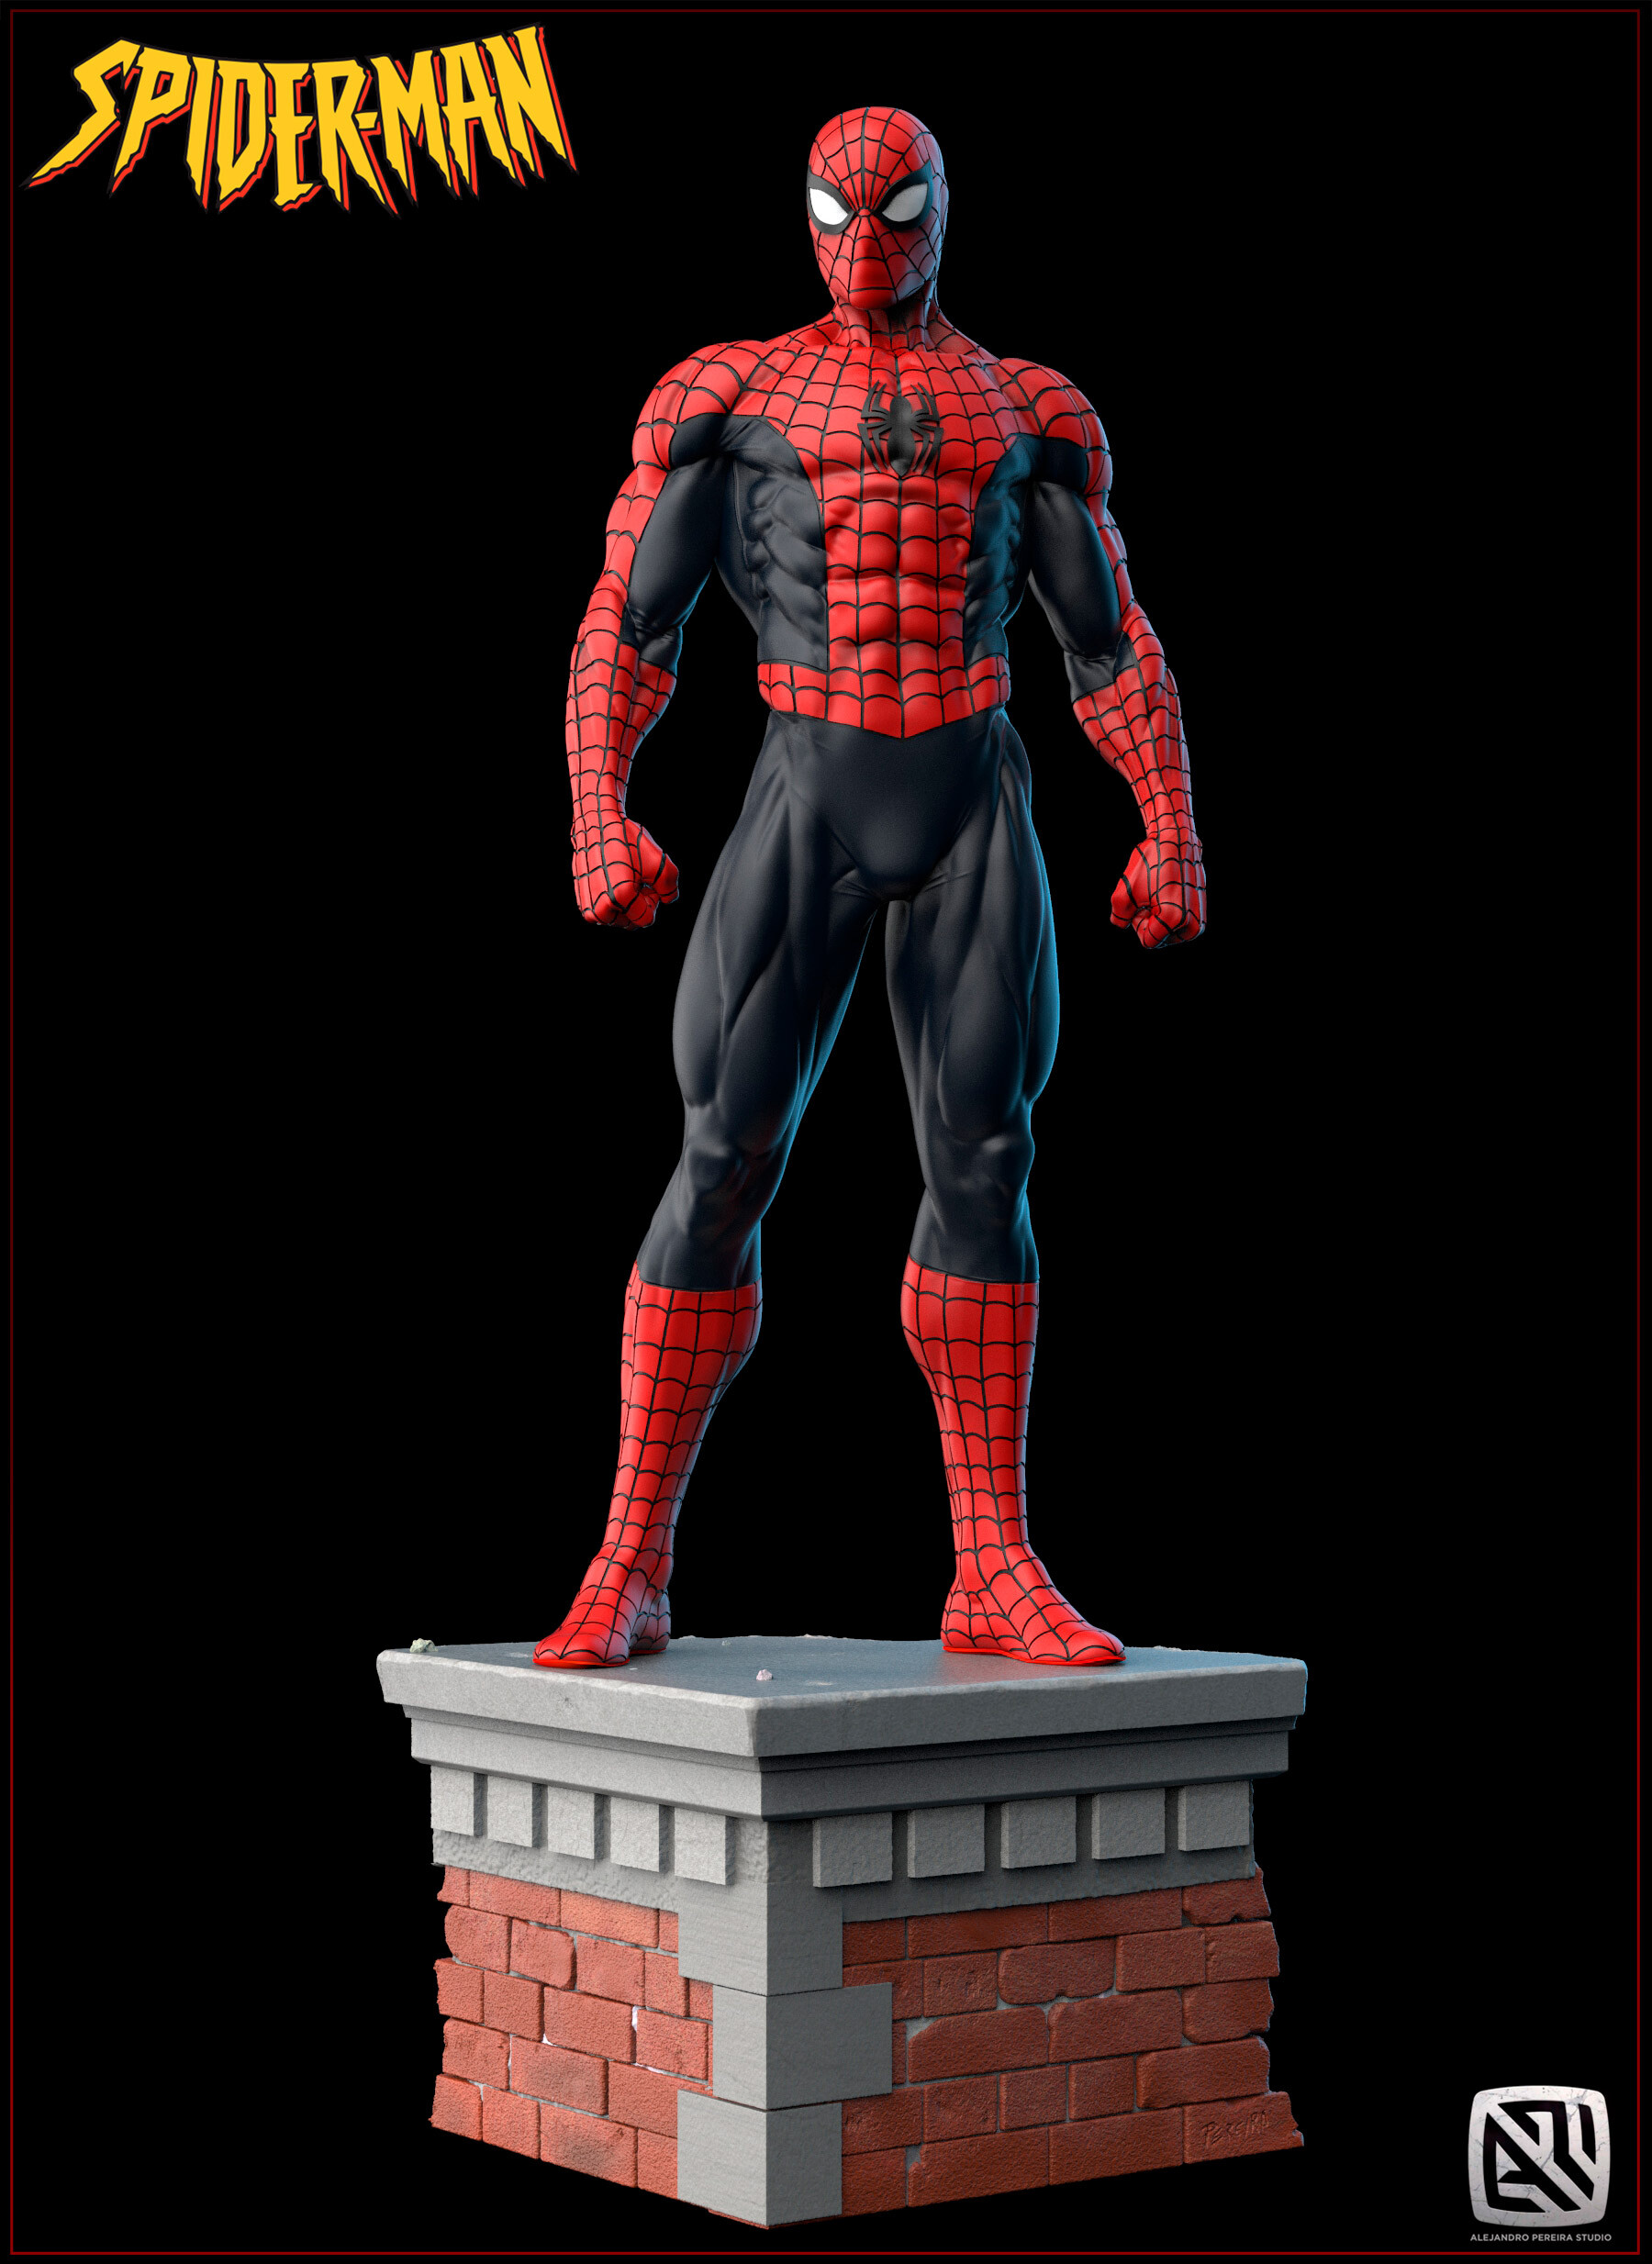 Alejandro pereira spidey render color 010